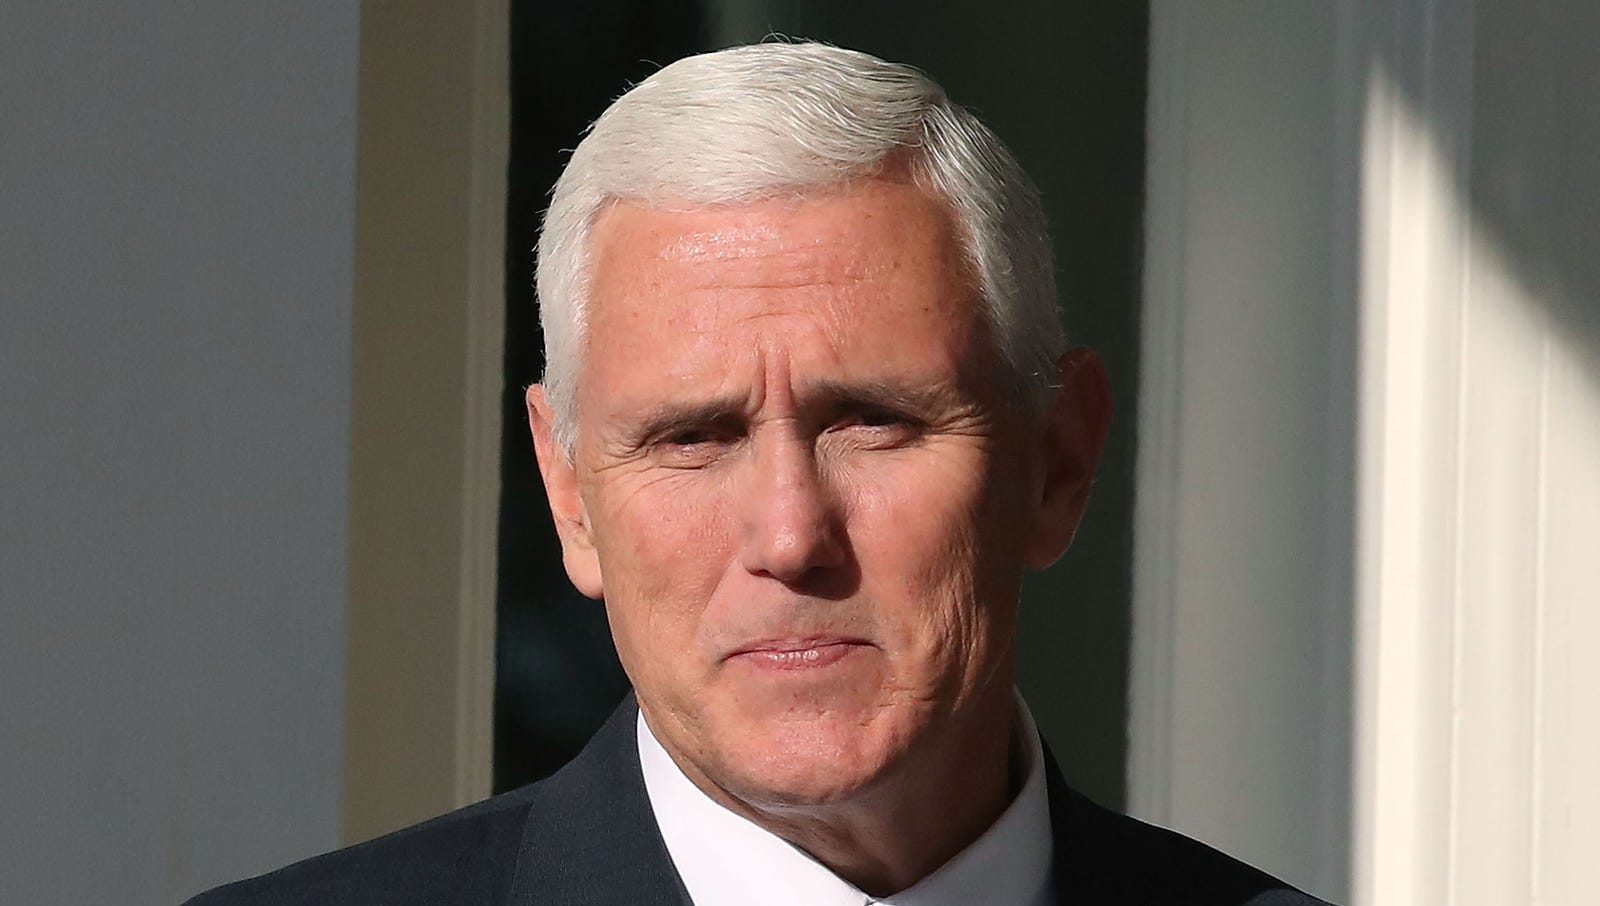 Mike Pence Disappointed God Has Never Asked Him To Kill One Of Own Children